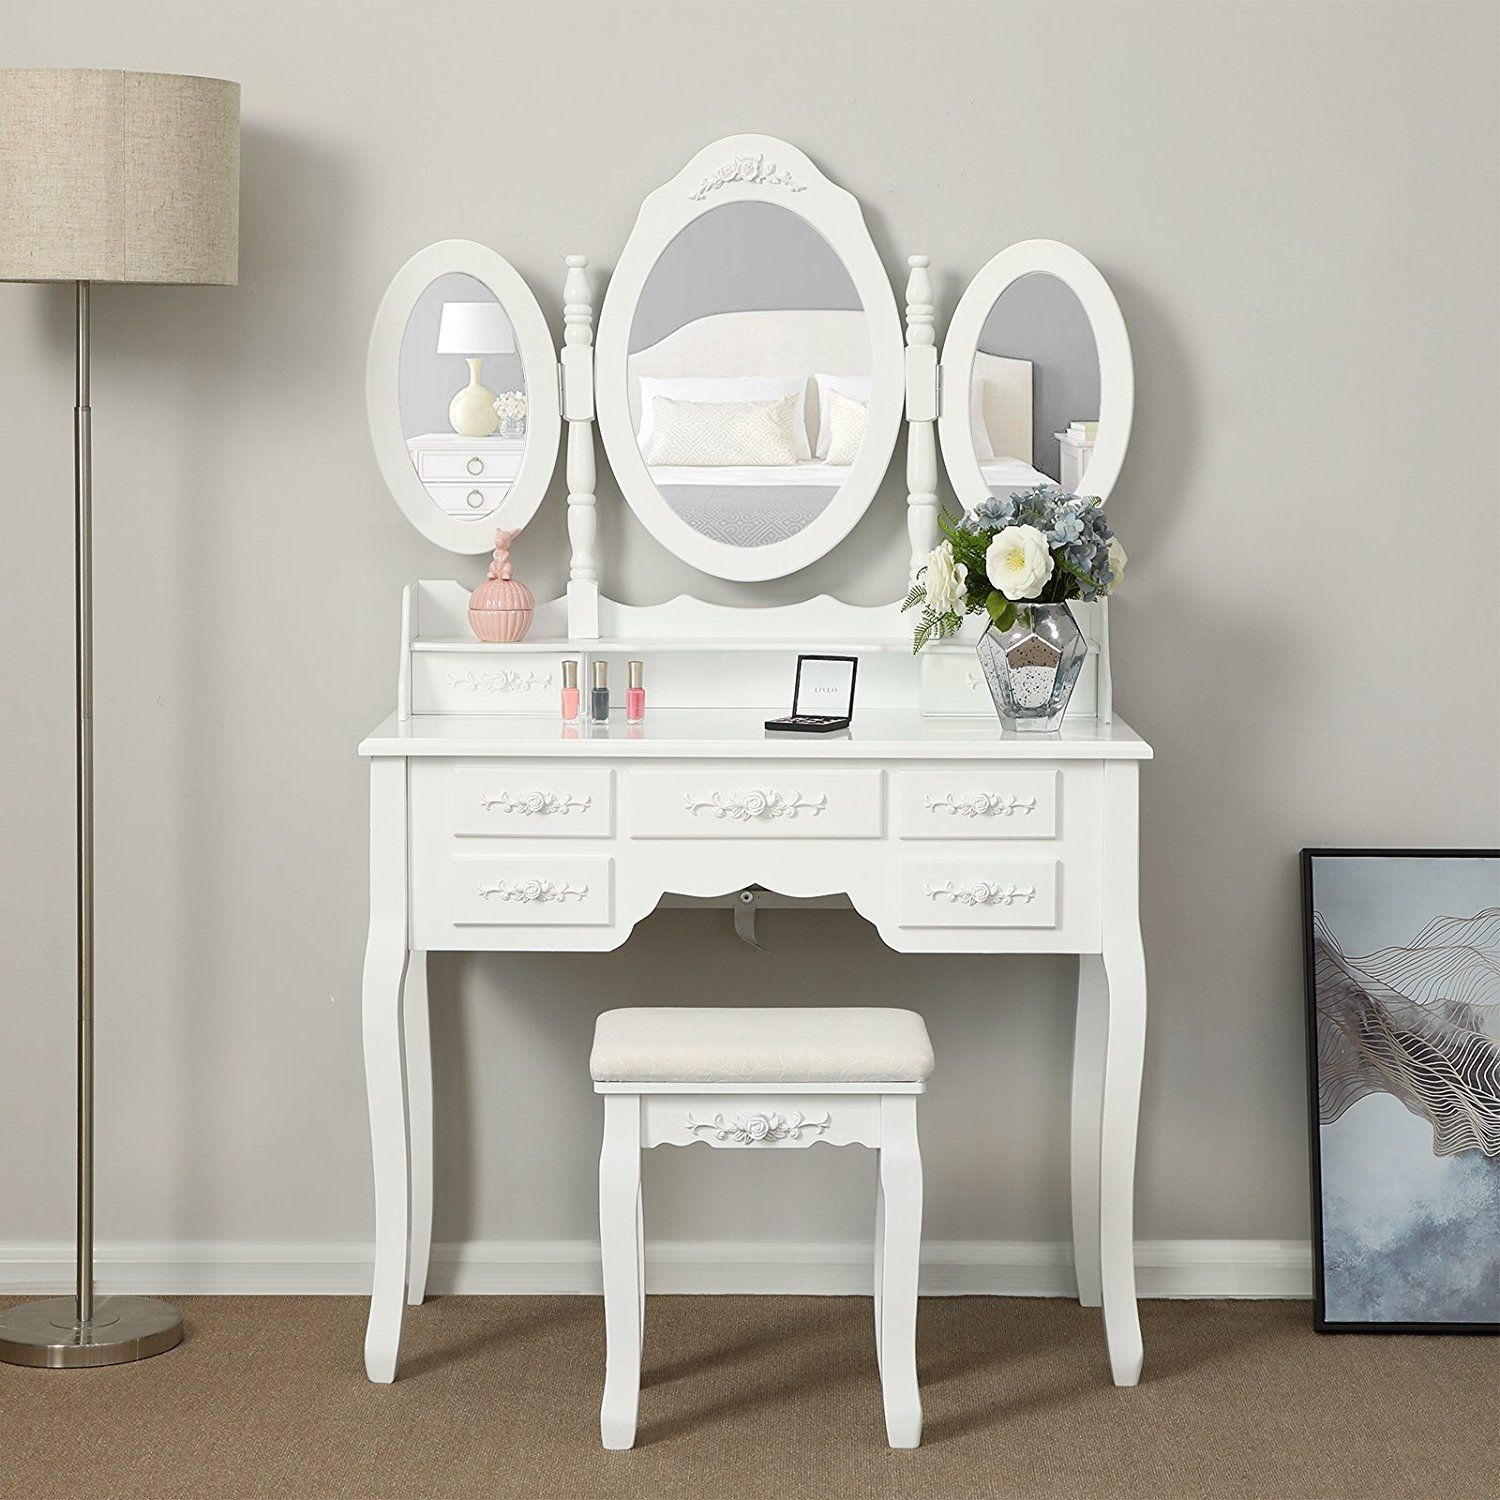 Zimtown Vanity Set Makeup Desk Set Dressing Table 3 Mirrors with 7 Drawers 360°Rotation White